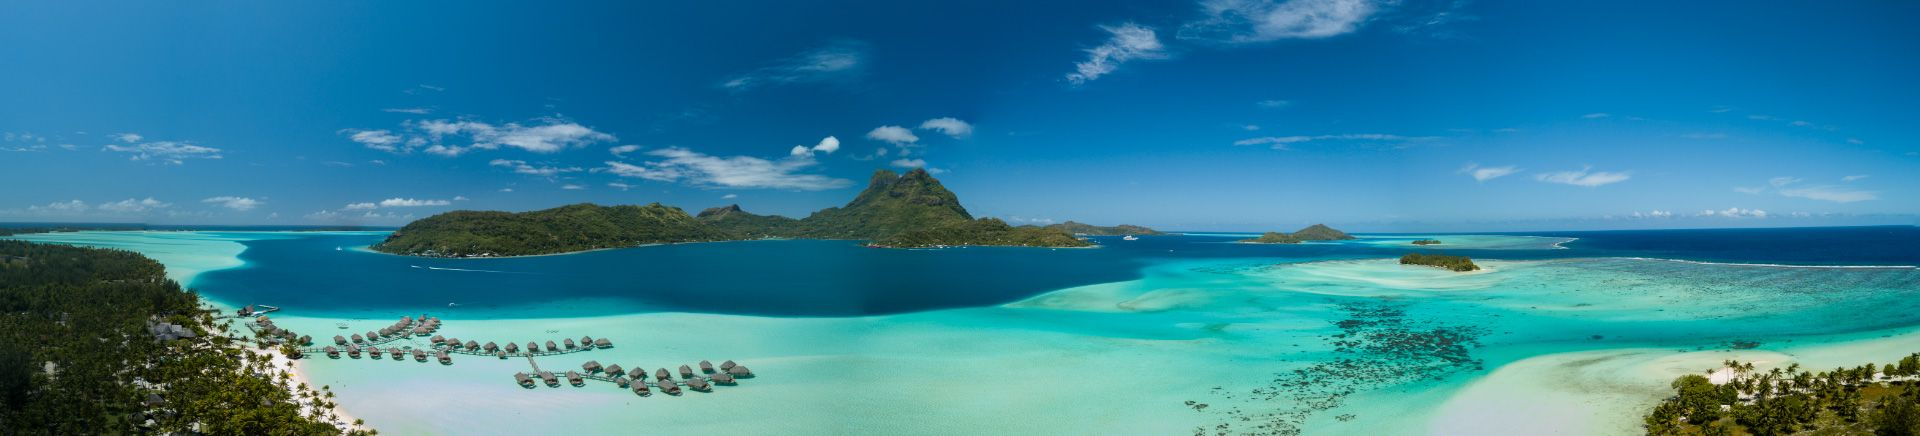 Image of French Polynesia